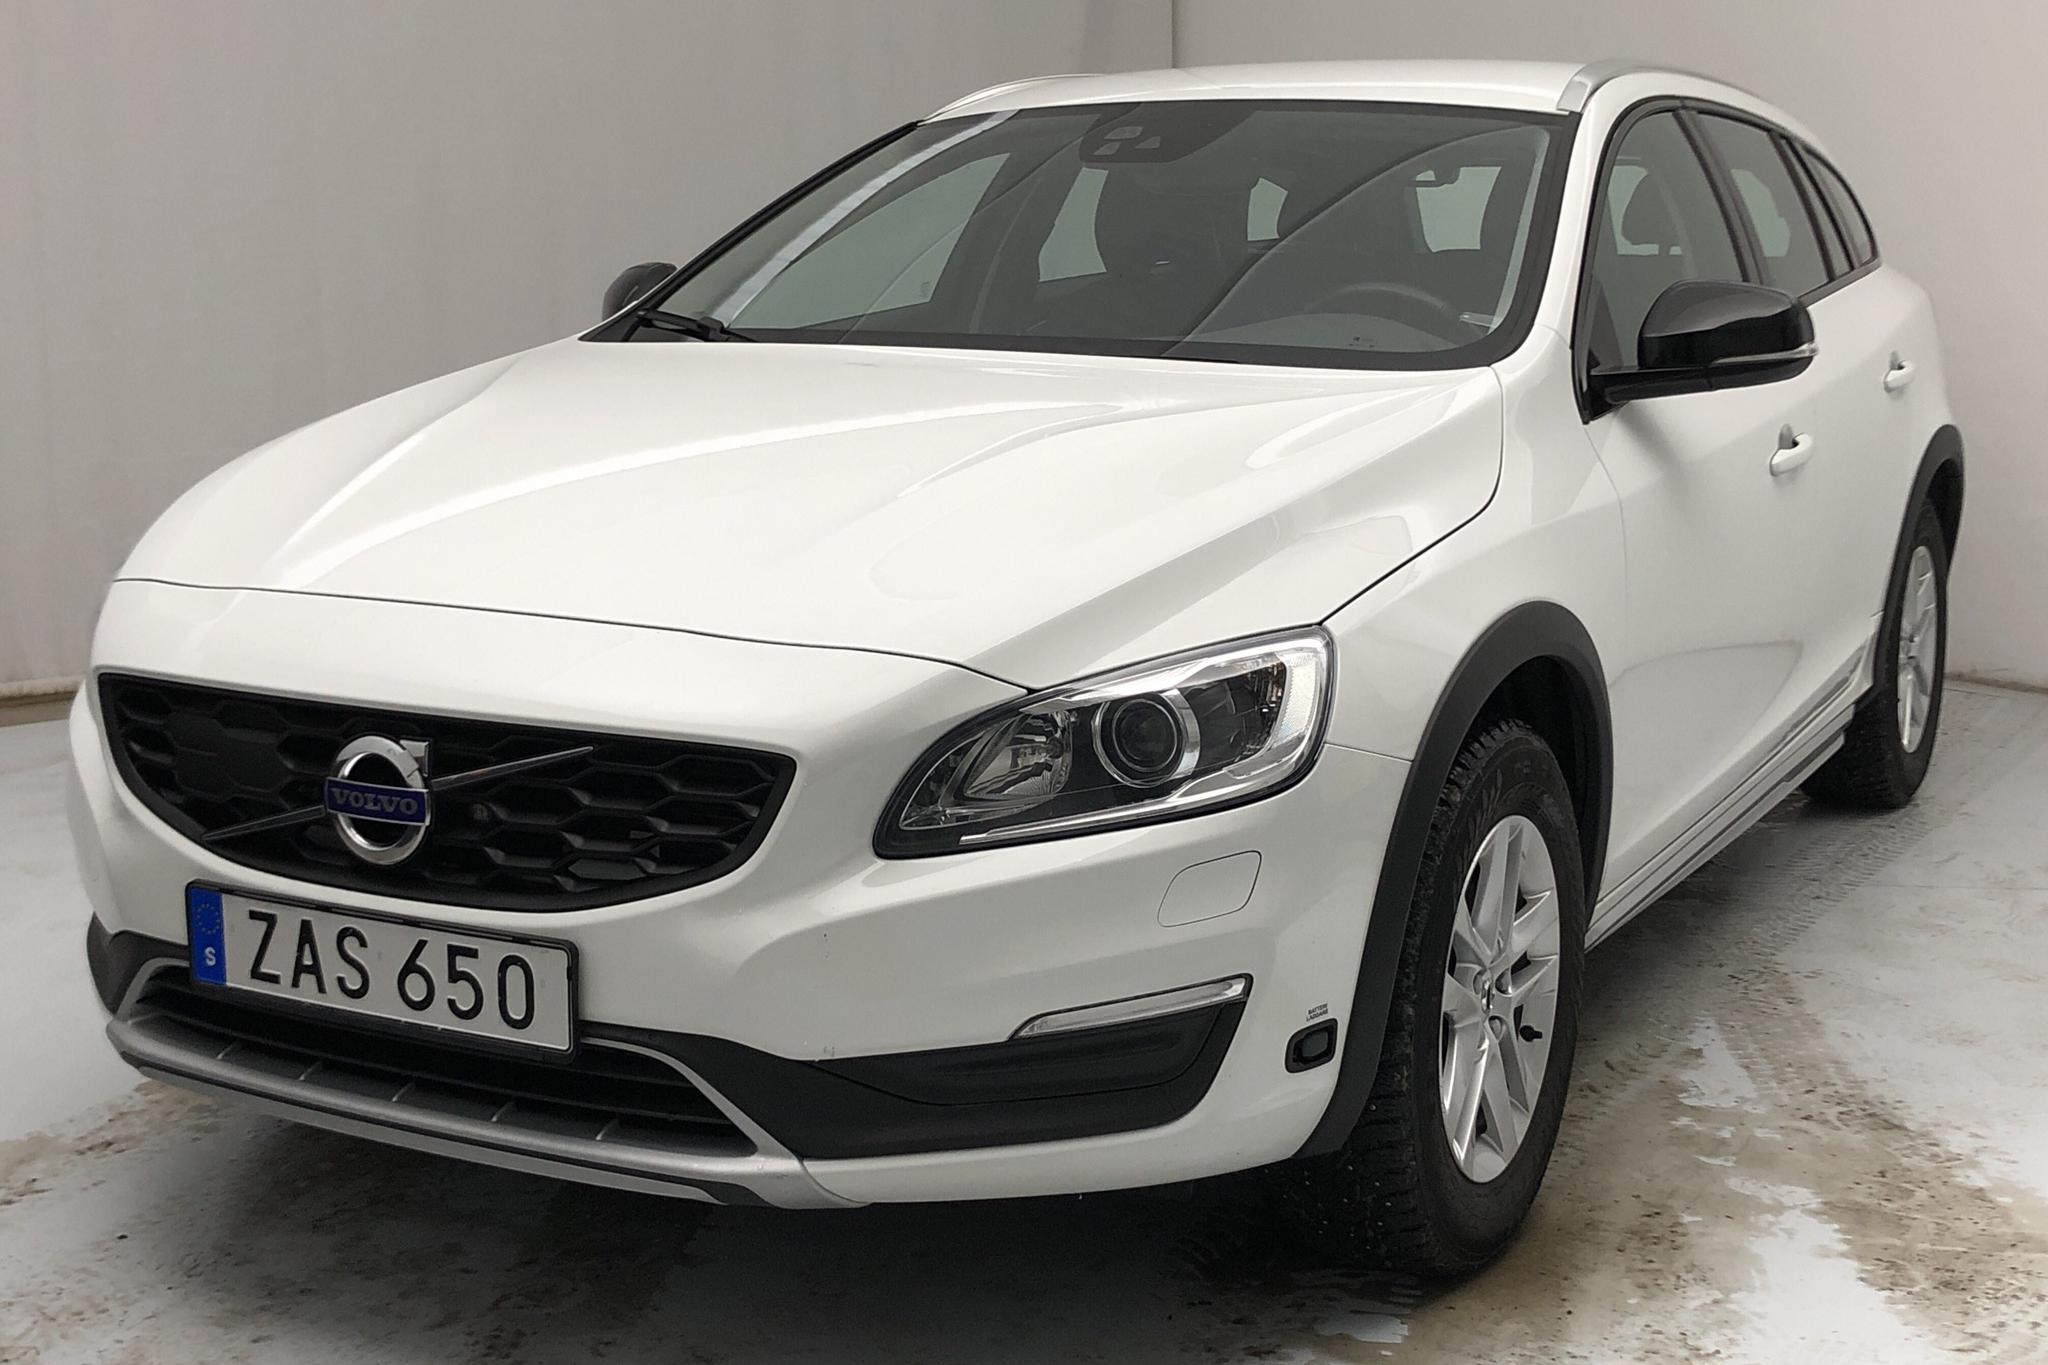 Volvo V60 D3 Cross Country (150hk) - 90 740 km - Automatic - white - 2018